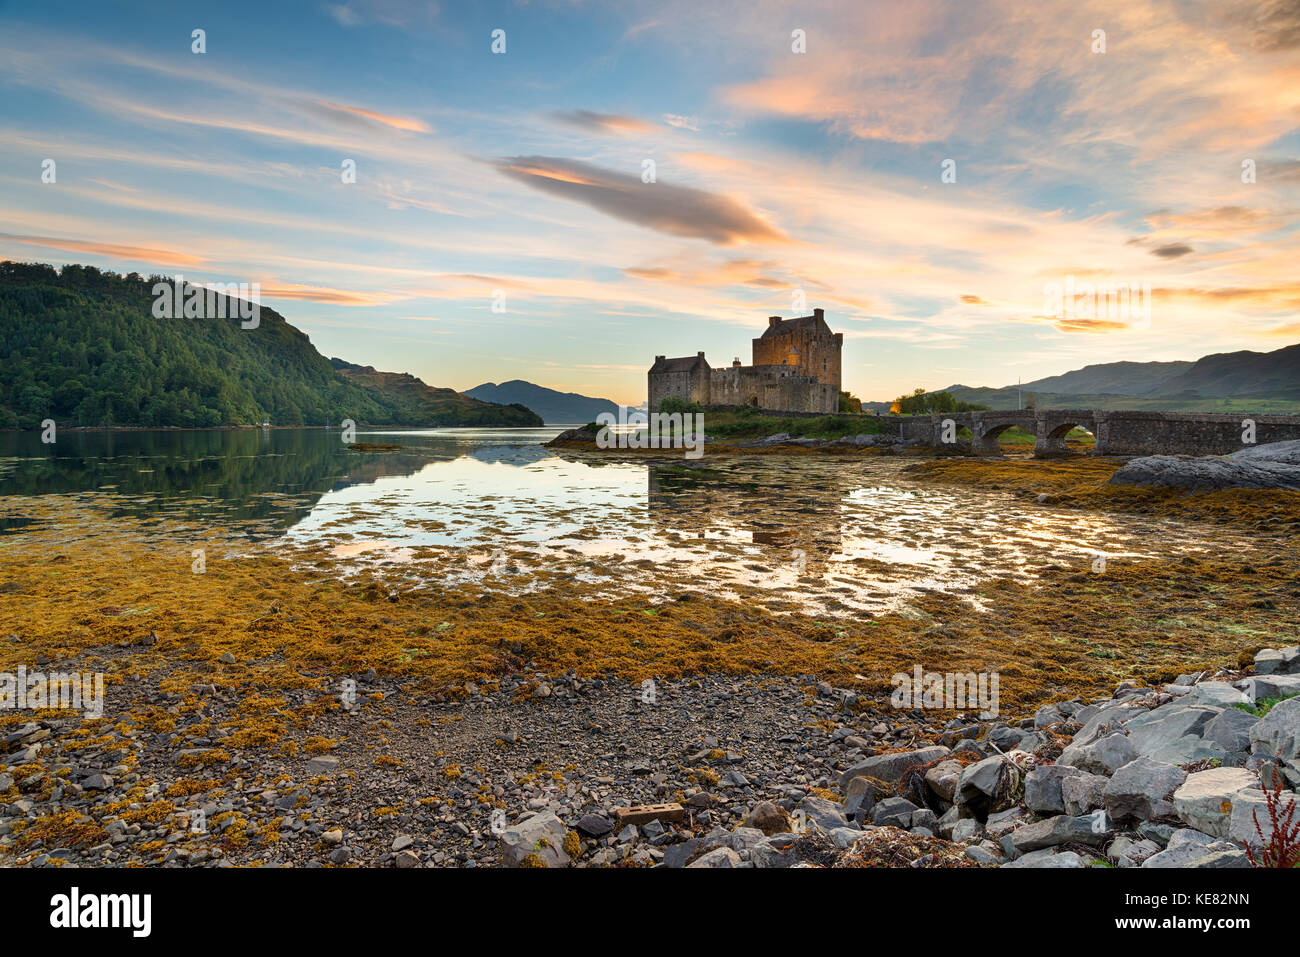 Sunset over Eilean Donan Donan Castle on the shores of Kyle of Lochalsh in the Highlands of Scotland - Stock Image